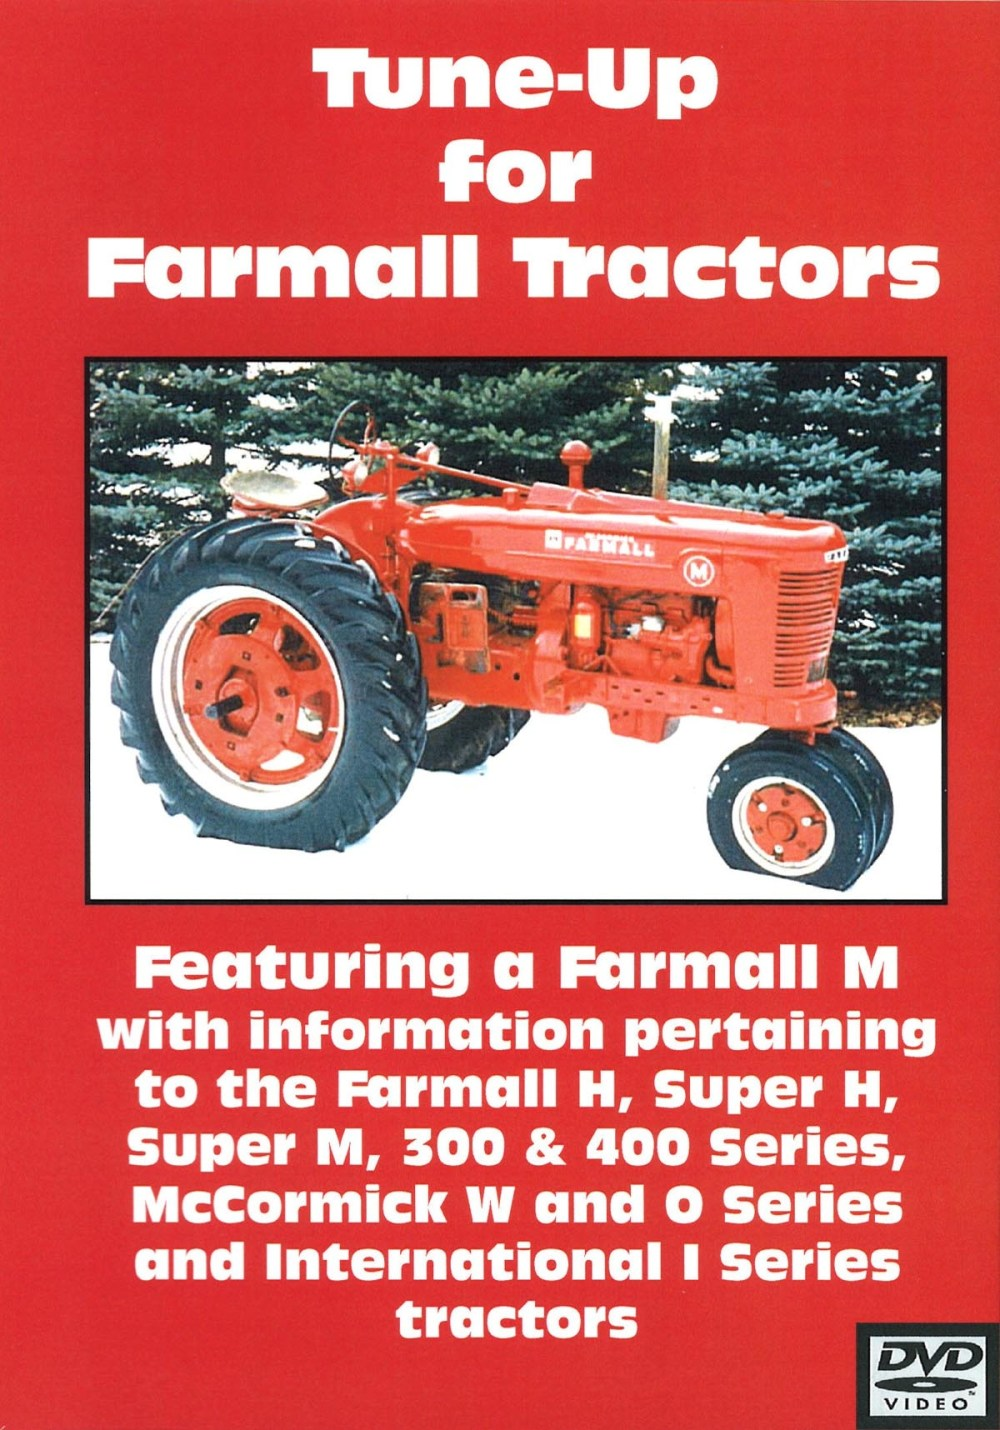 medium resolution of farmall h m 300 400 tune up video dvd for the case ih 300 400 h m model tractor s